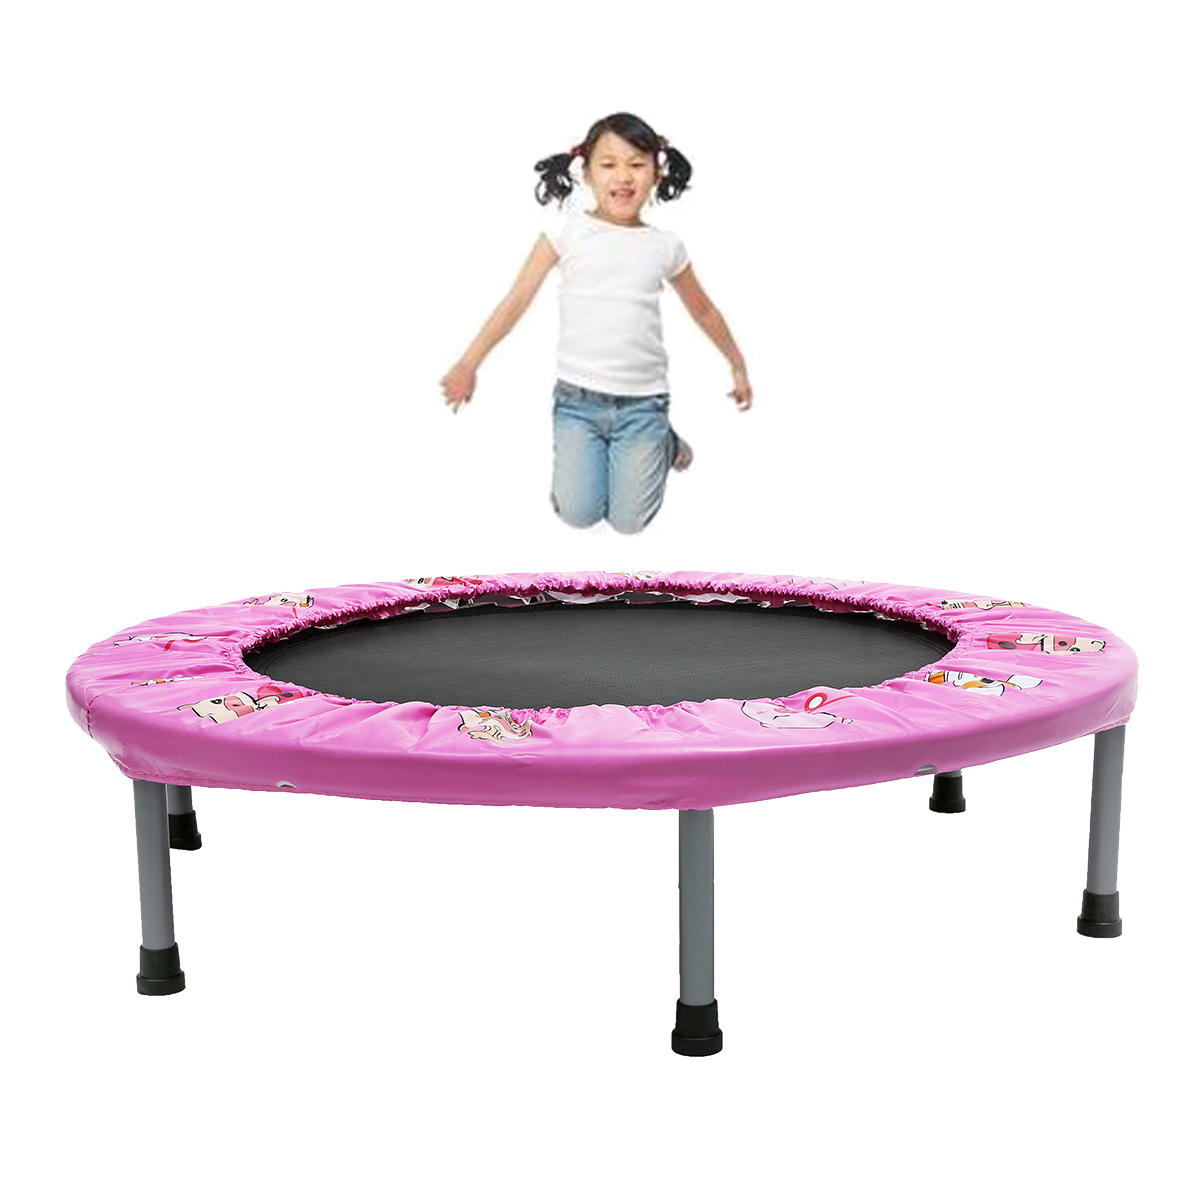 Protecting Your Kids With A Trampoline Spring Cover